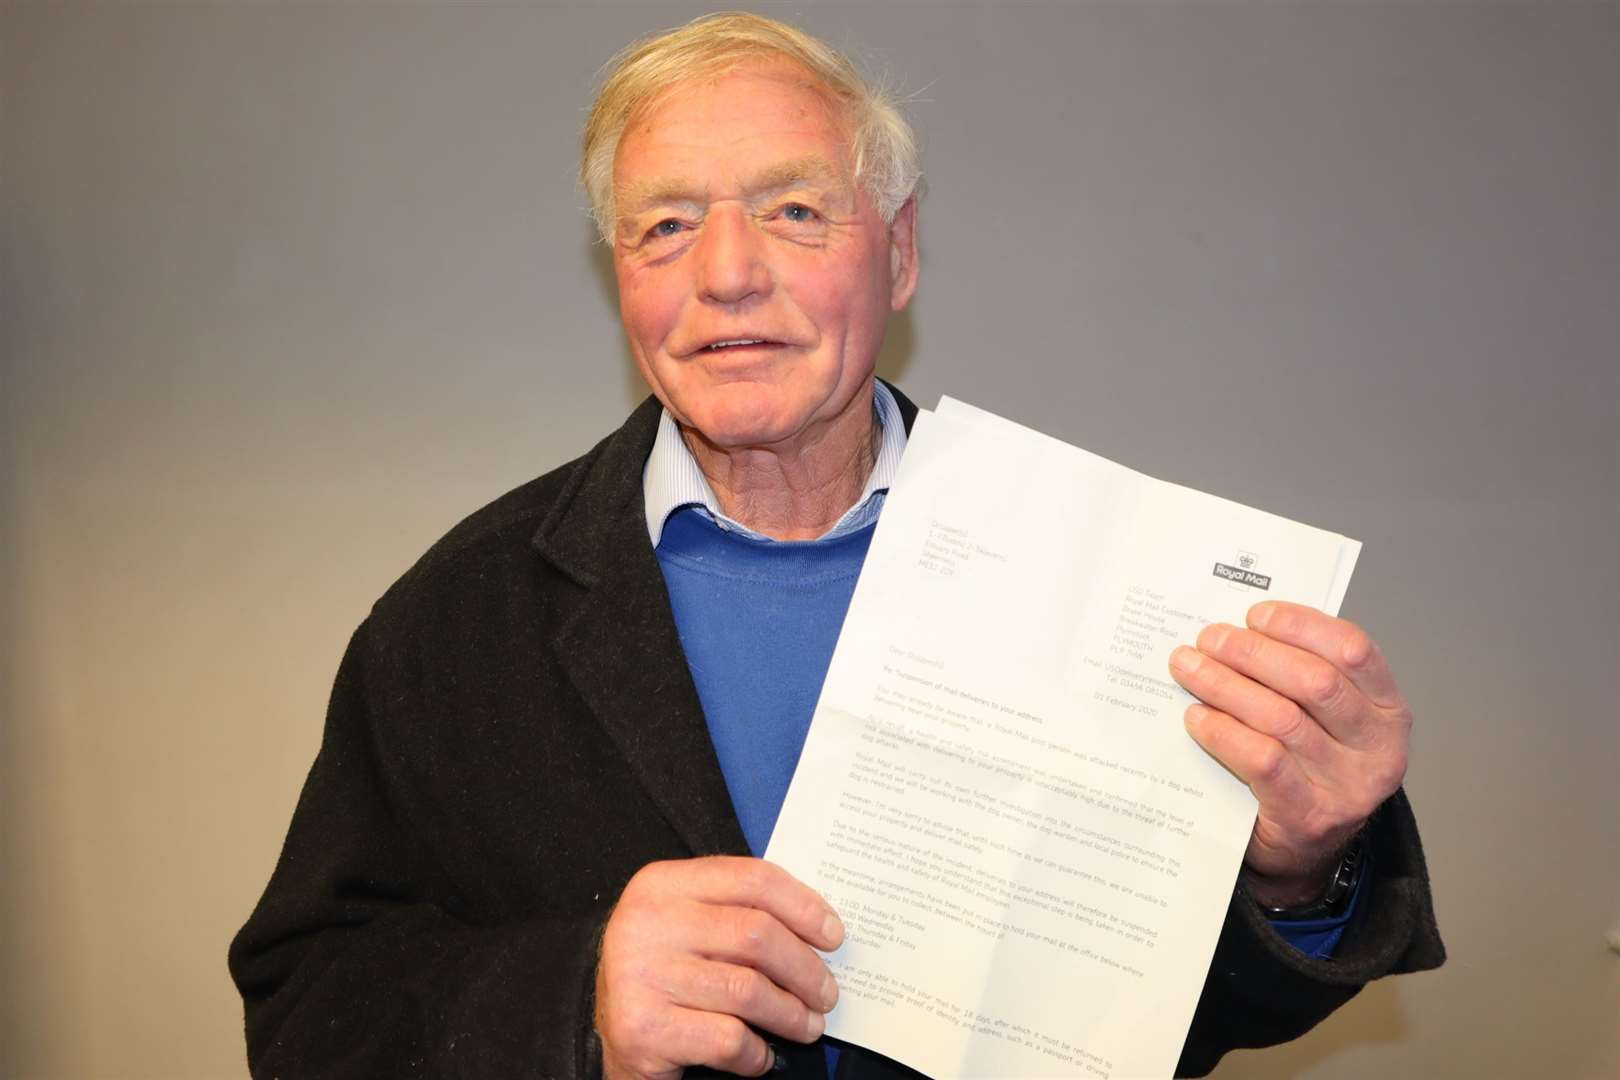 Butch Stanton with his letter from Royal Mail saying his postal service had been suspended